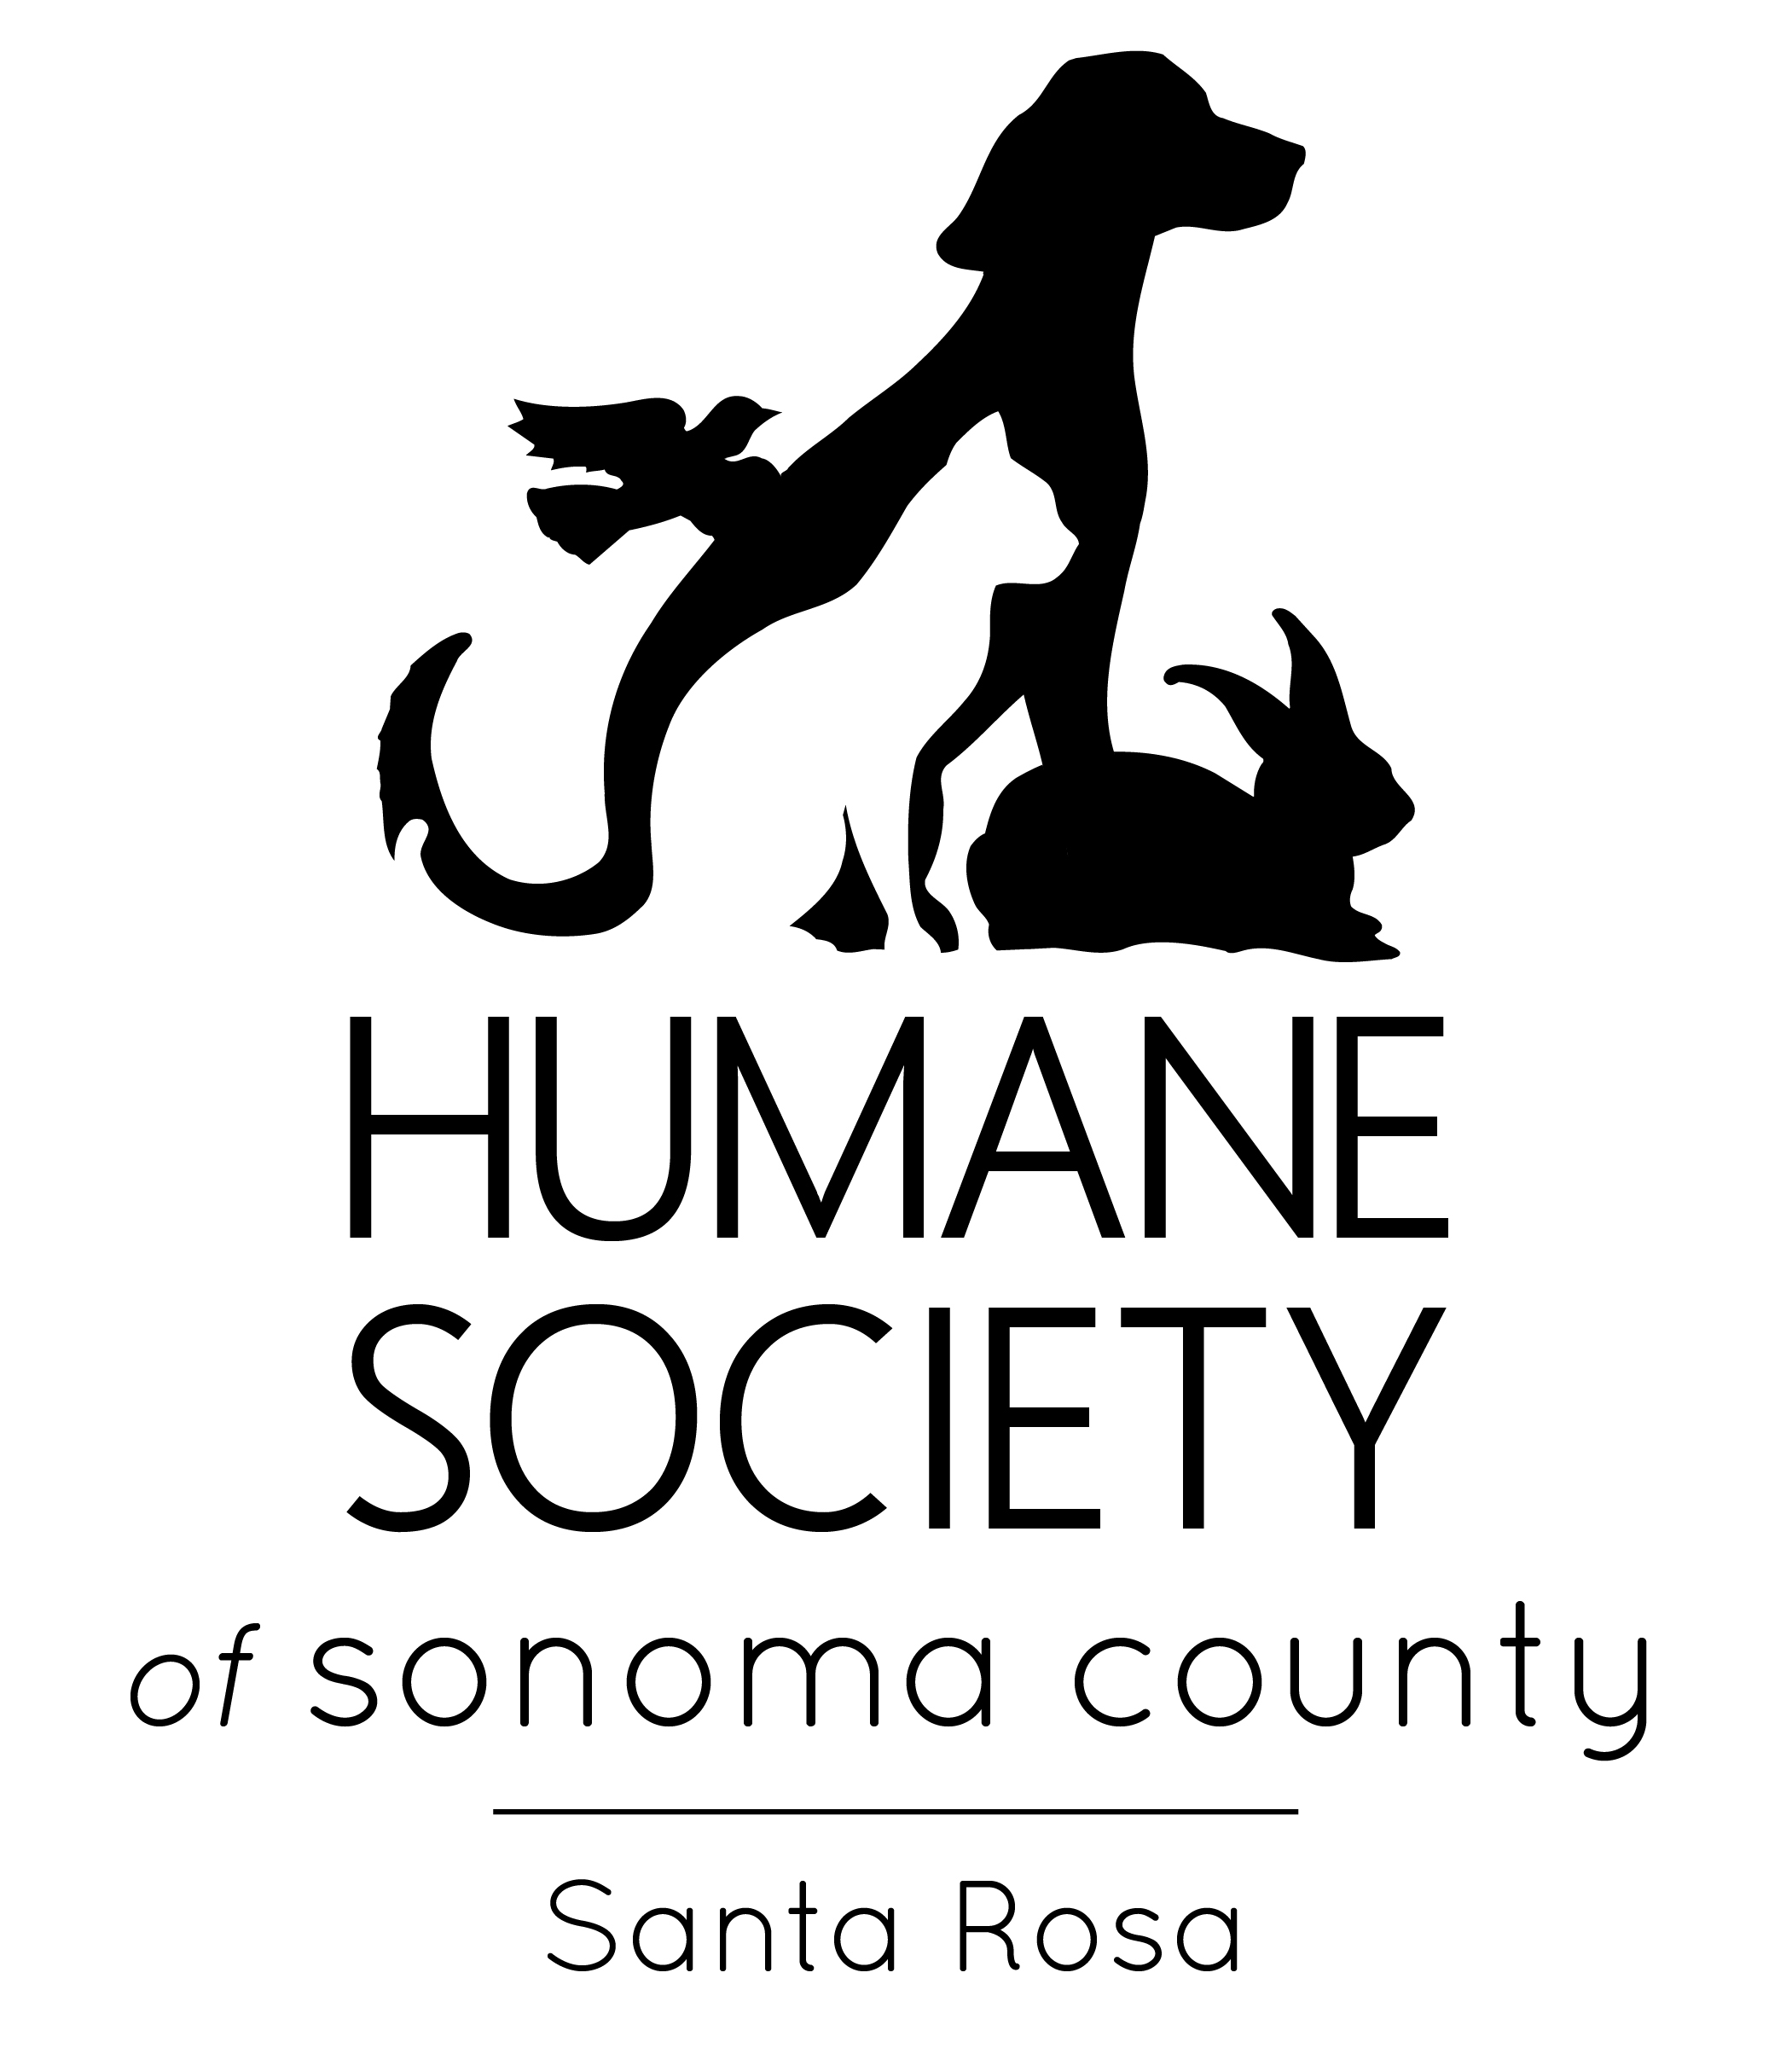 Humane Society of Sonoma County - Santa Rosa